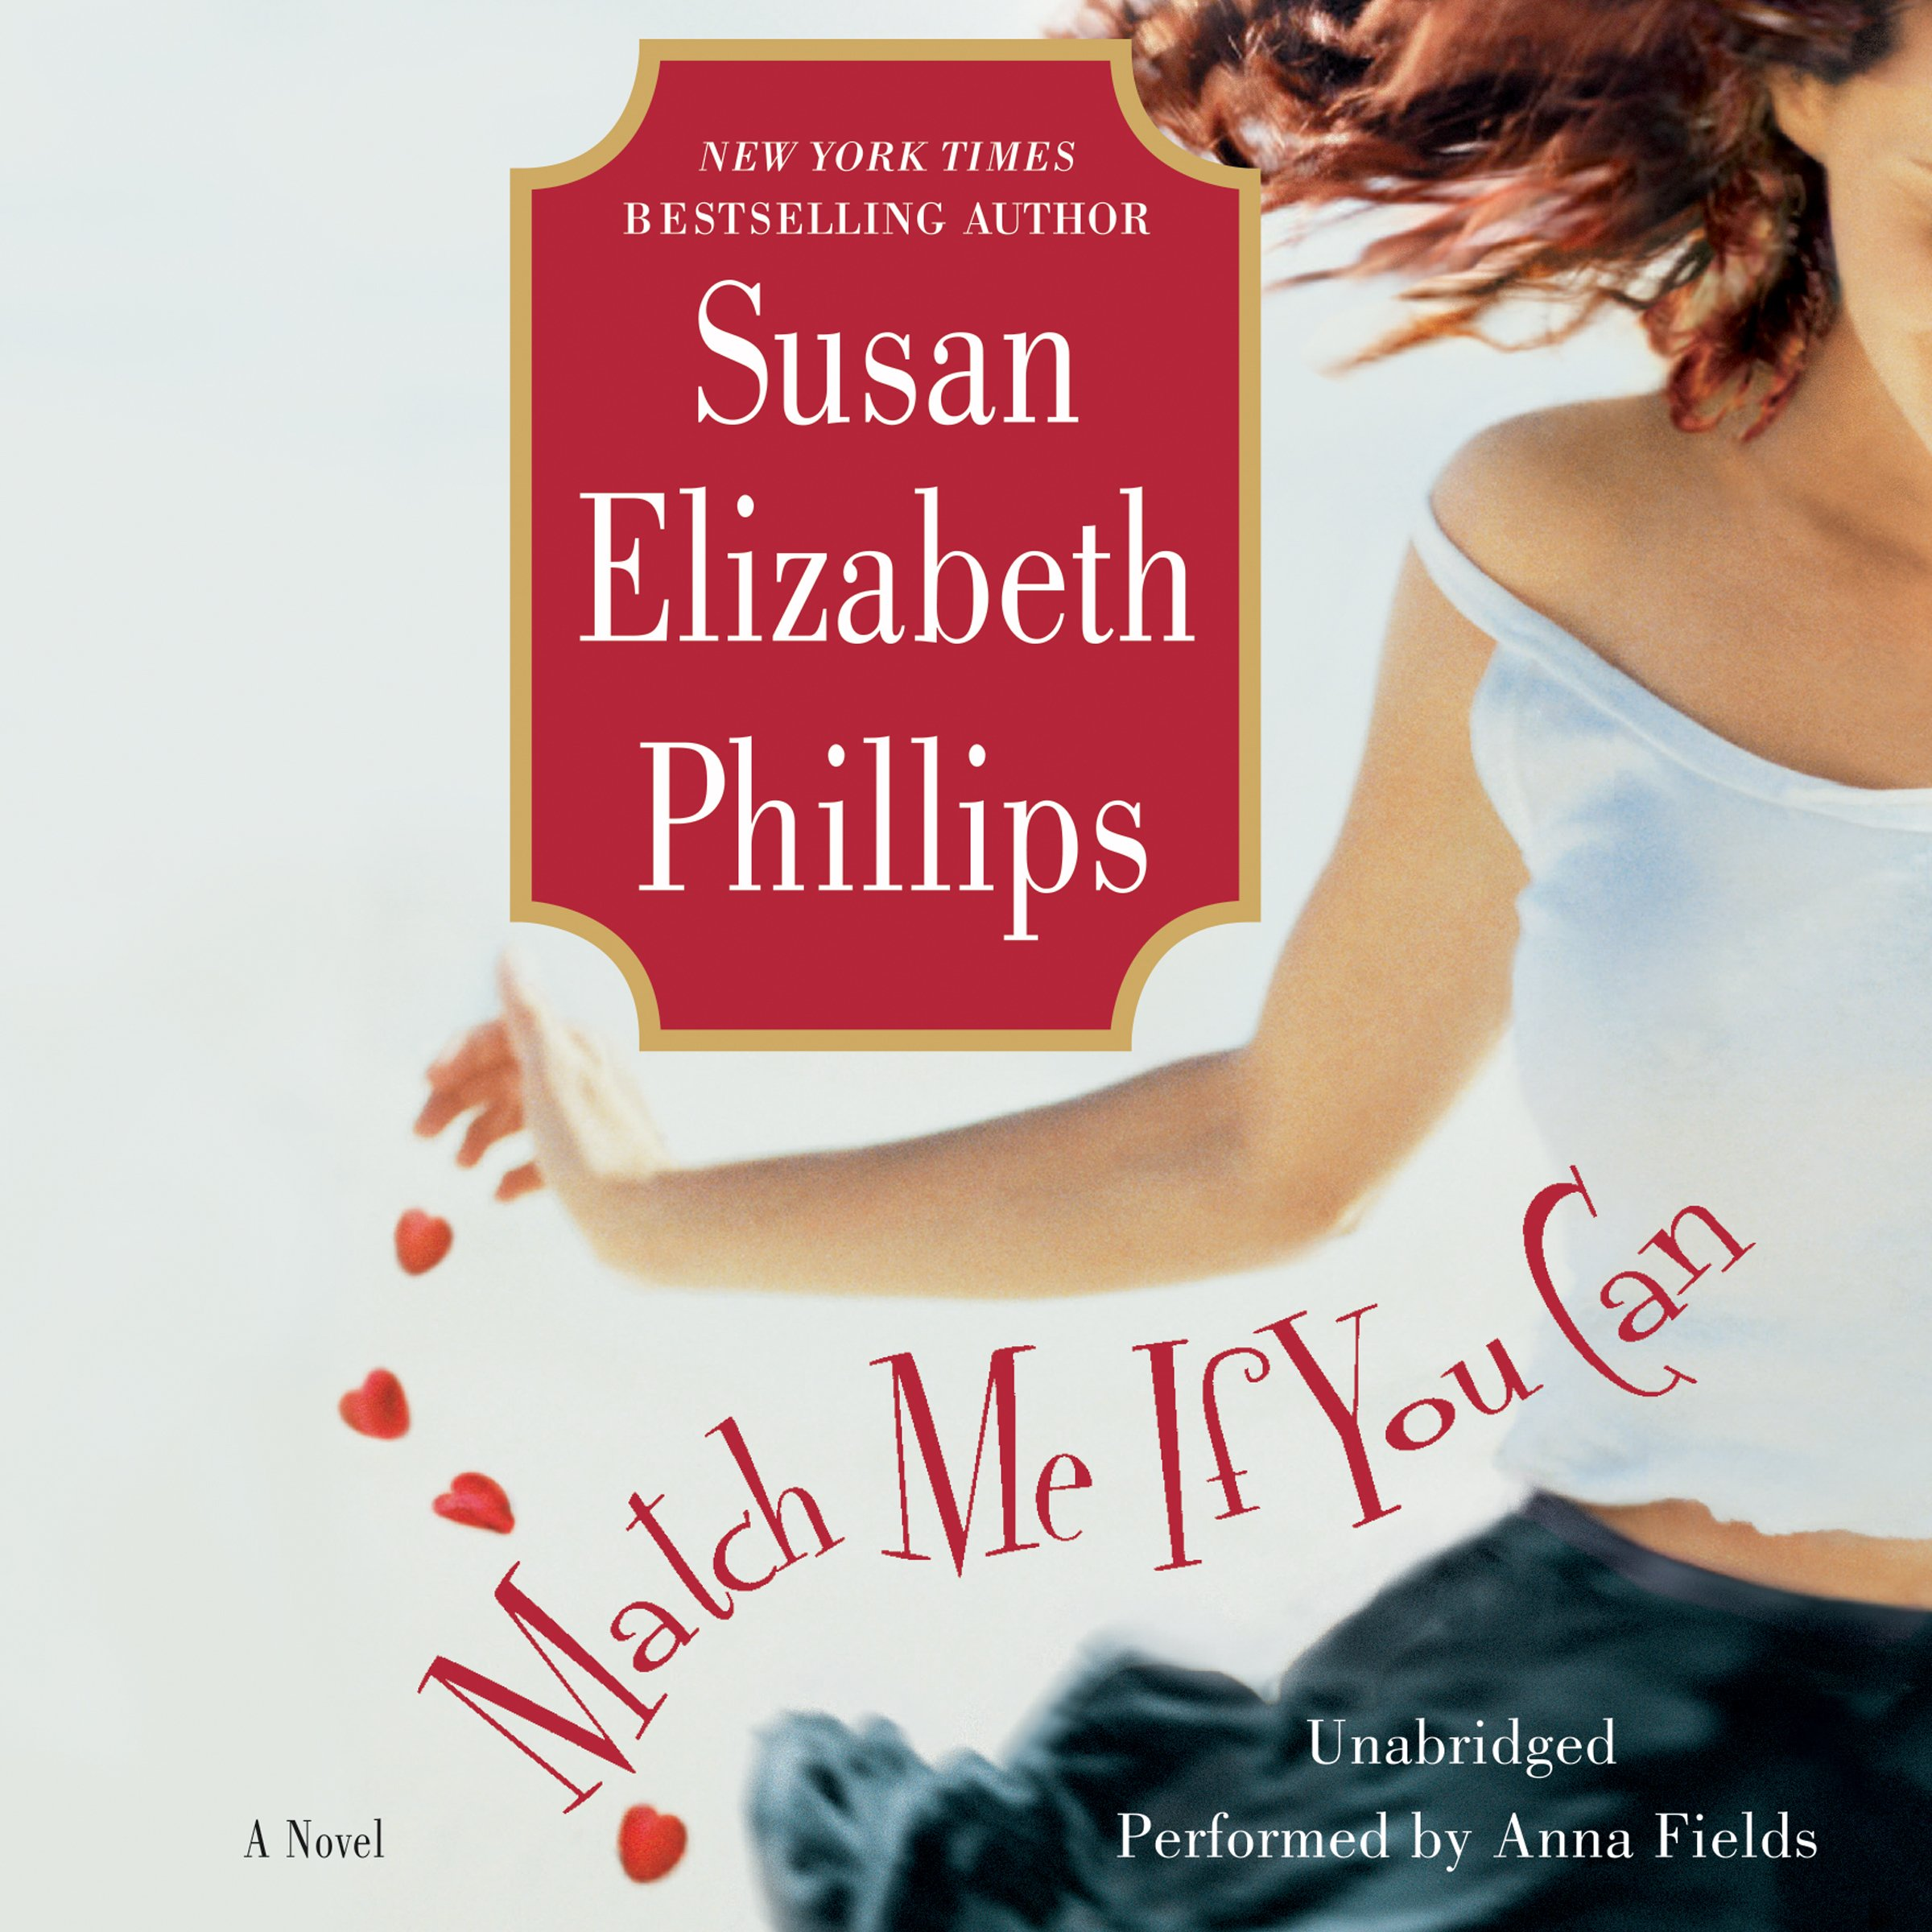 Match Me If You Can (Chicago Stars): Amazon.co.uk: Susan Elizabeth  Phillips, Anna Fields: 9781504708340: Books